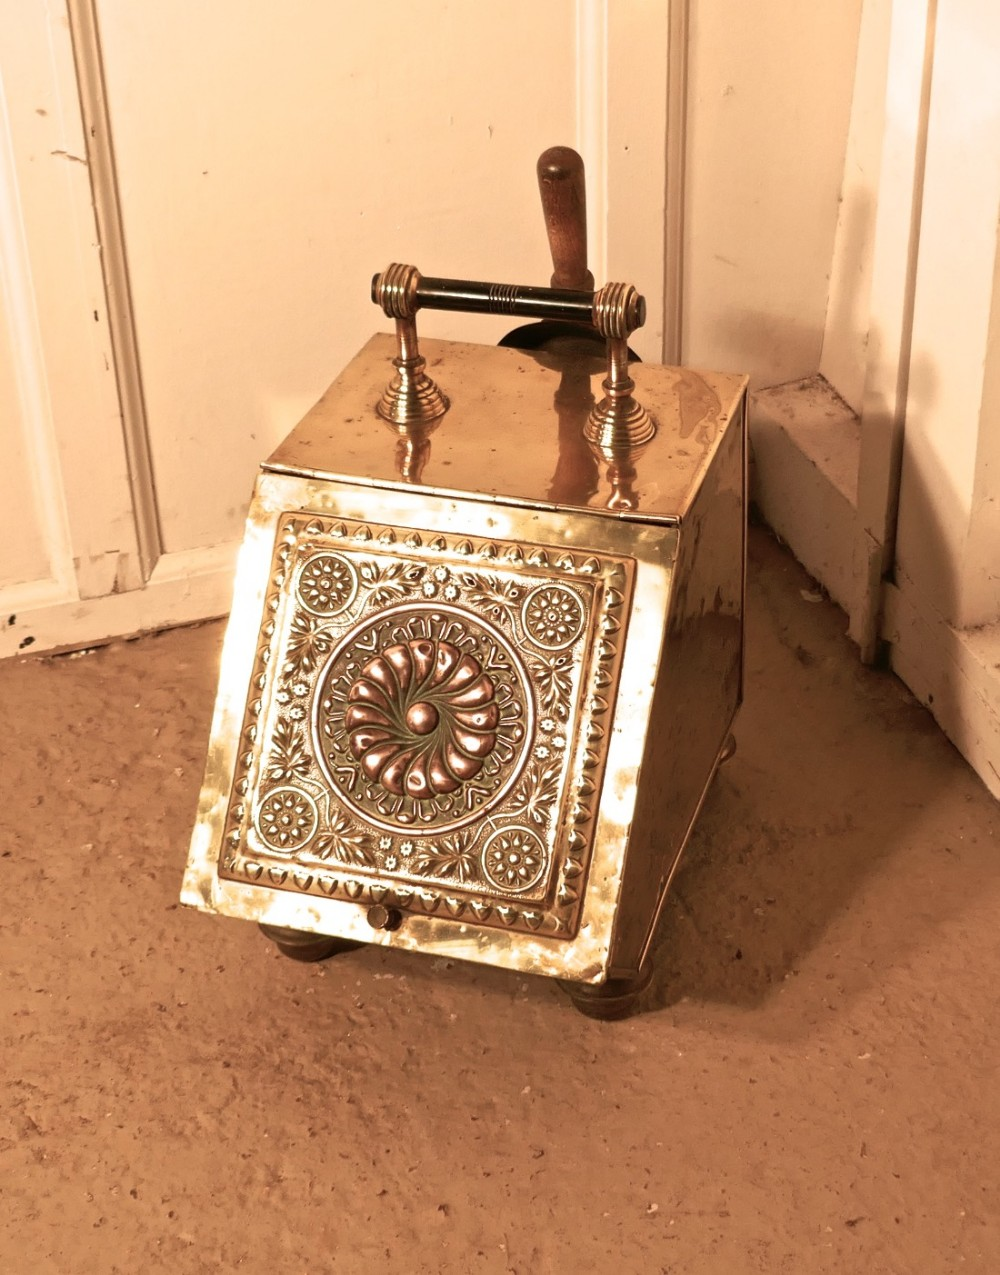 a victorian brass coal scuttle with liner and shovel